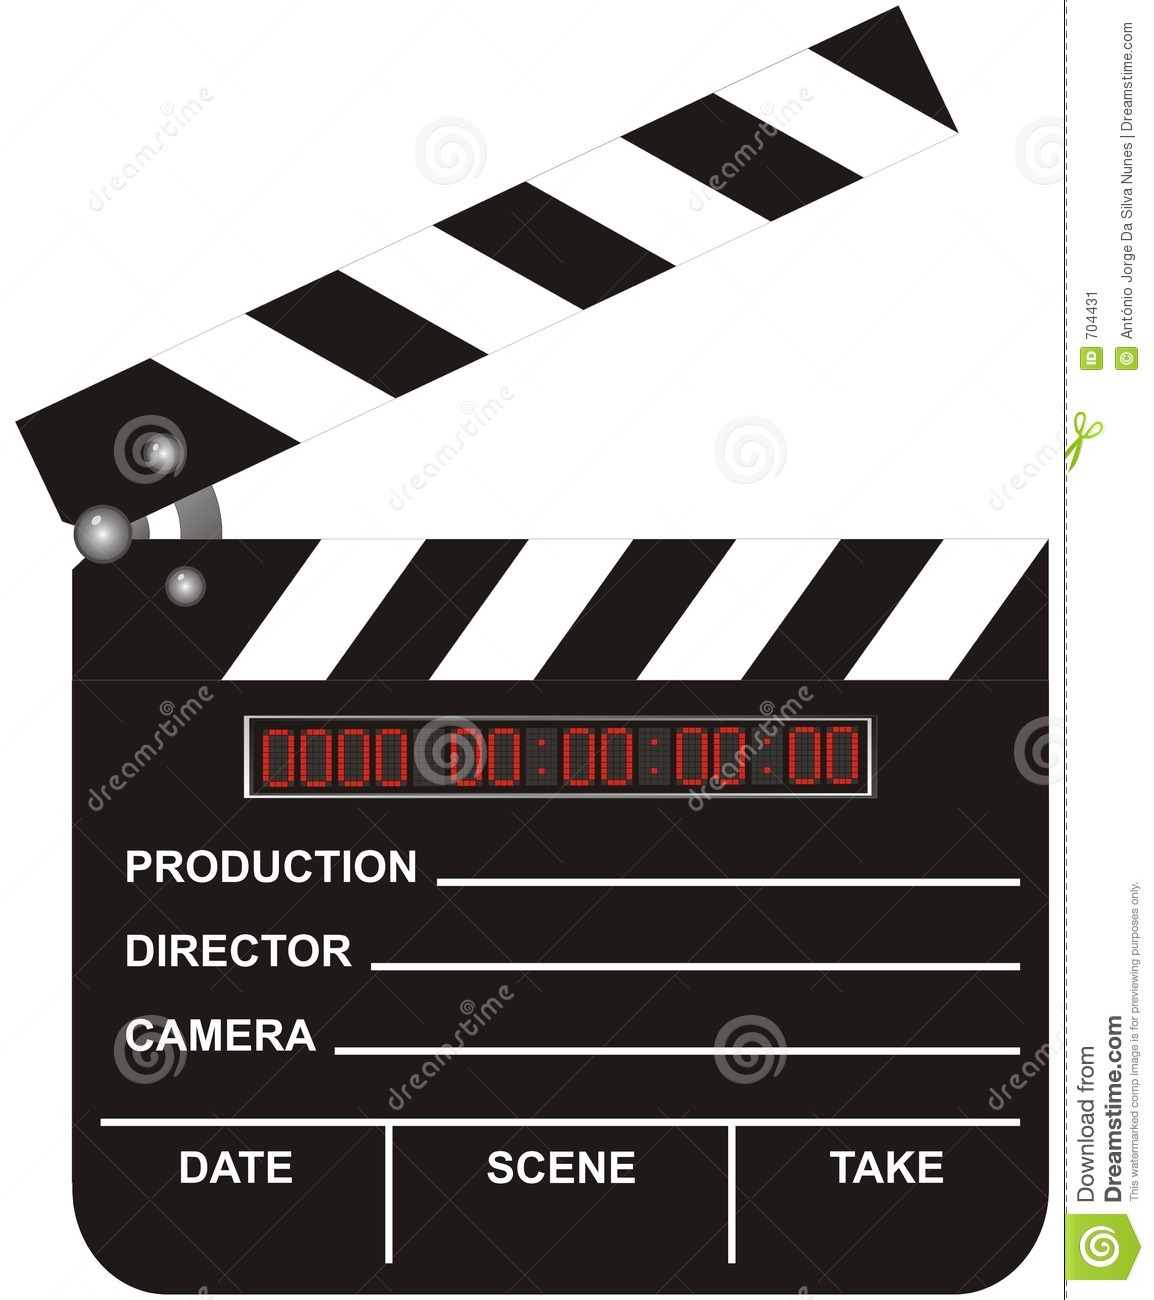 Open digital movie clapboard isolated on white background